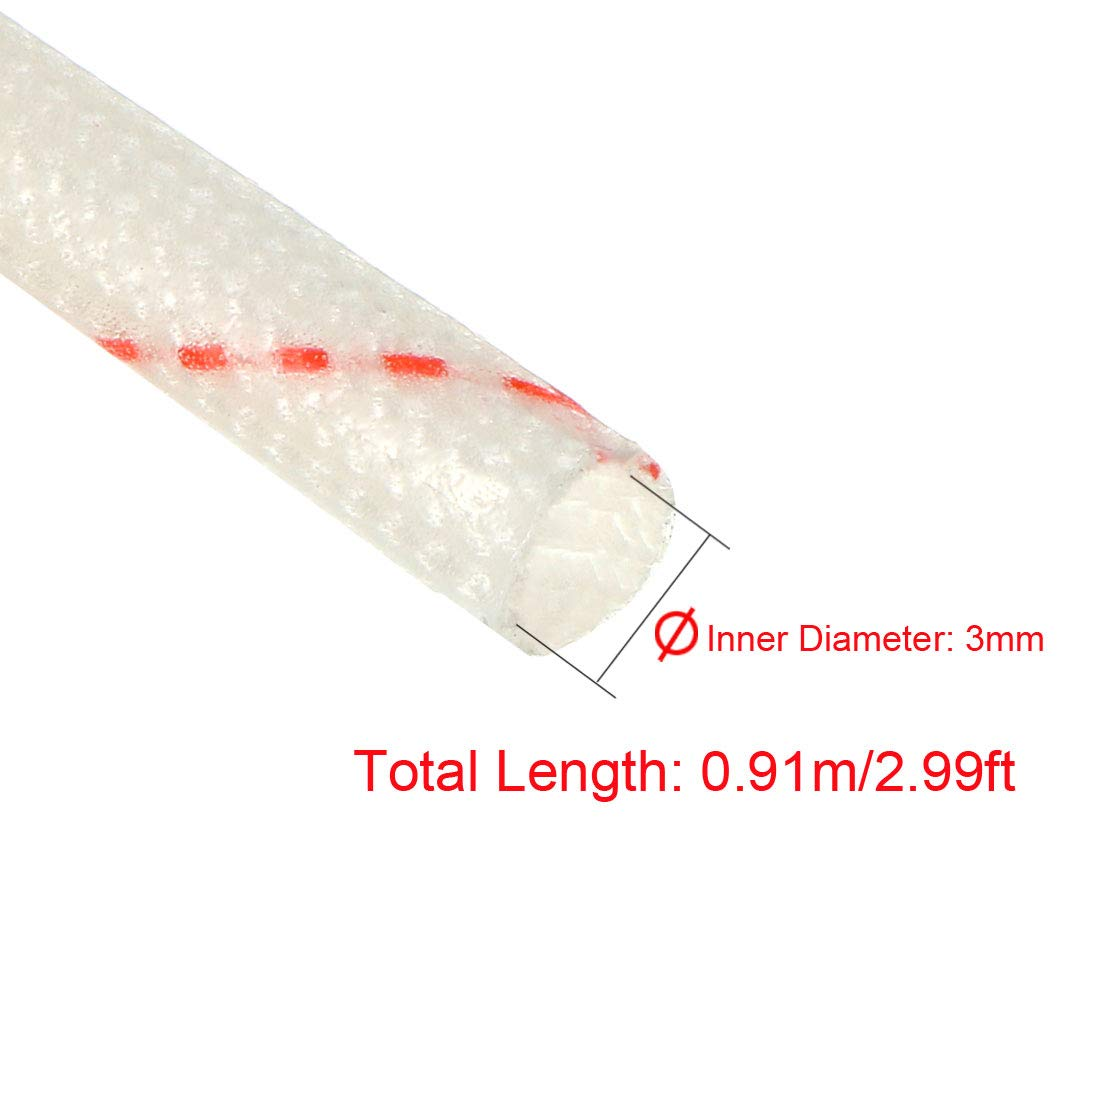 PVC Insulation Tubing 1500V Tube Adjustable Sleeving Pipe 125 Degree Centigrade Cable Wrap Wire 880mm 2.89ft 5pcs uxcell Fiberglass Sleeve 12mm I.D